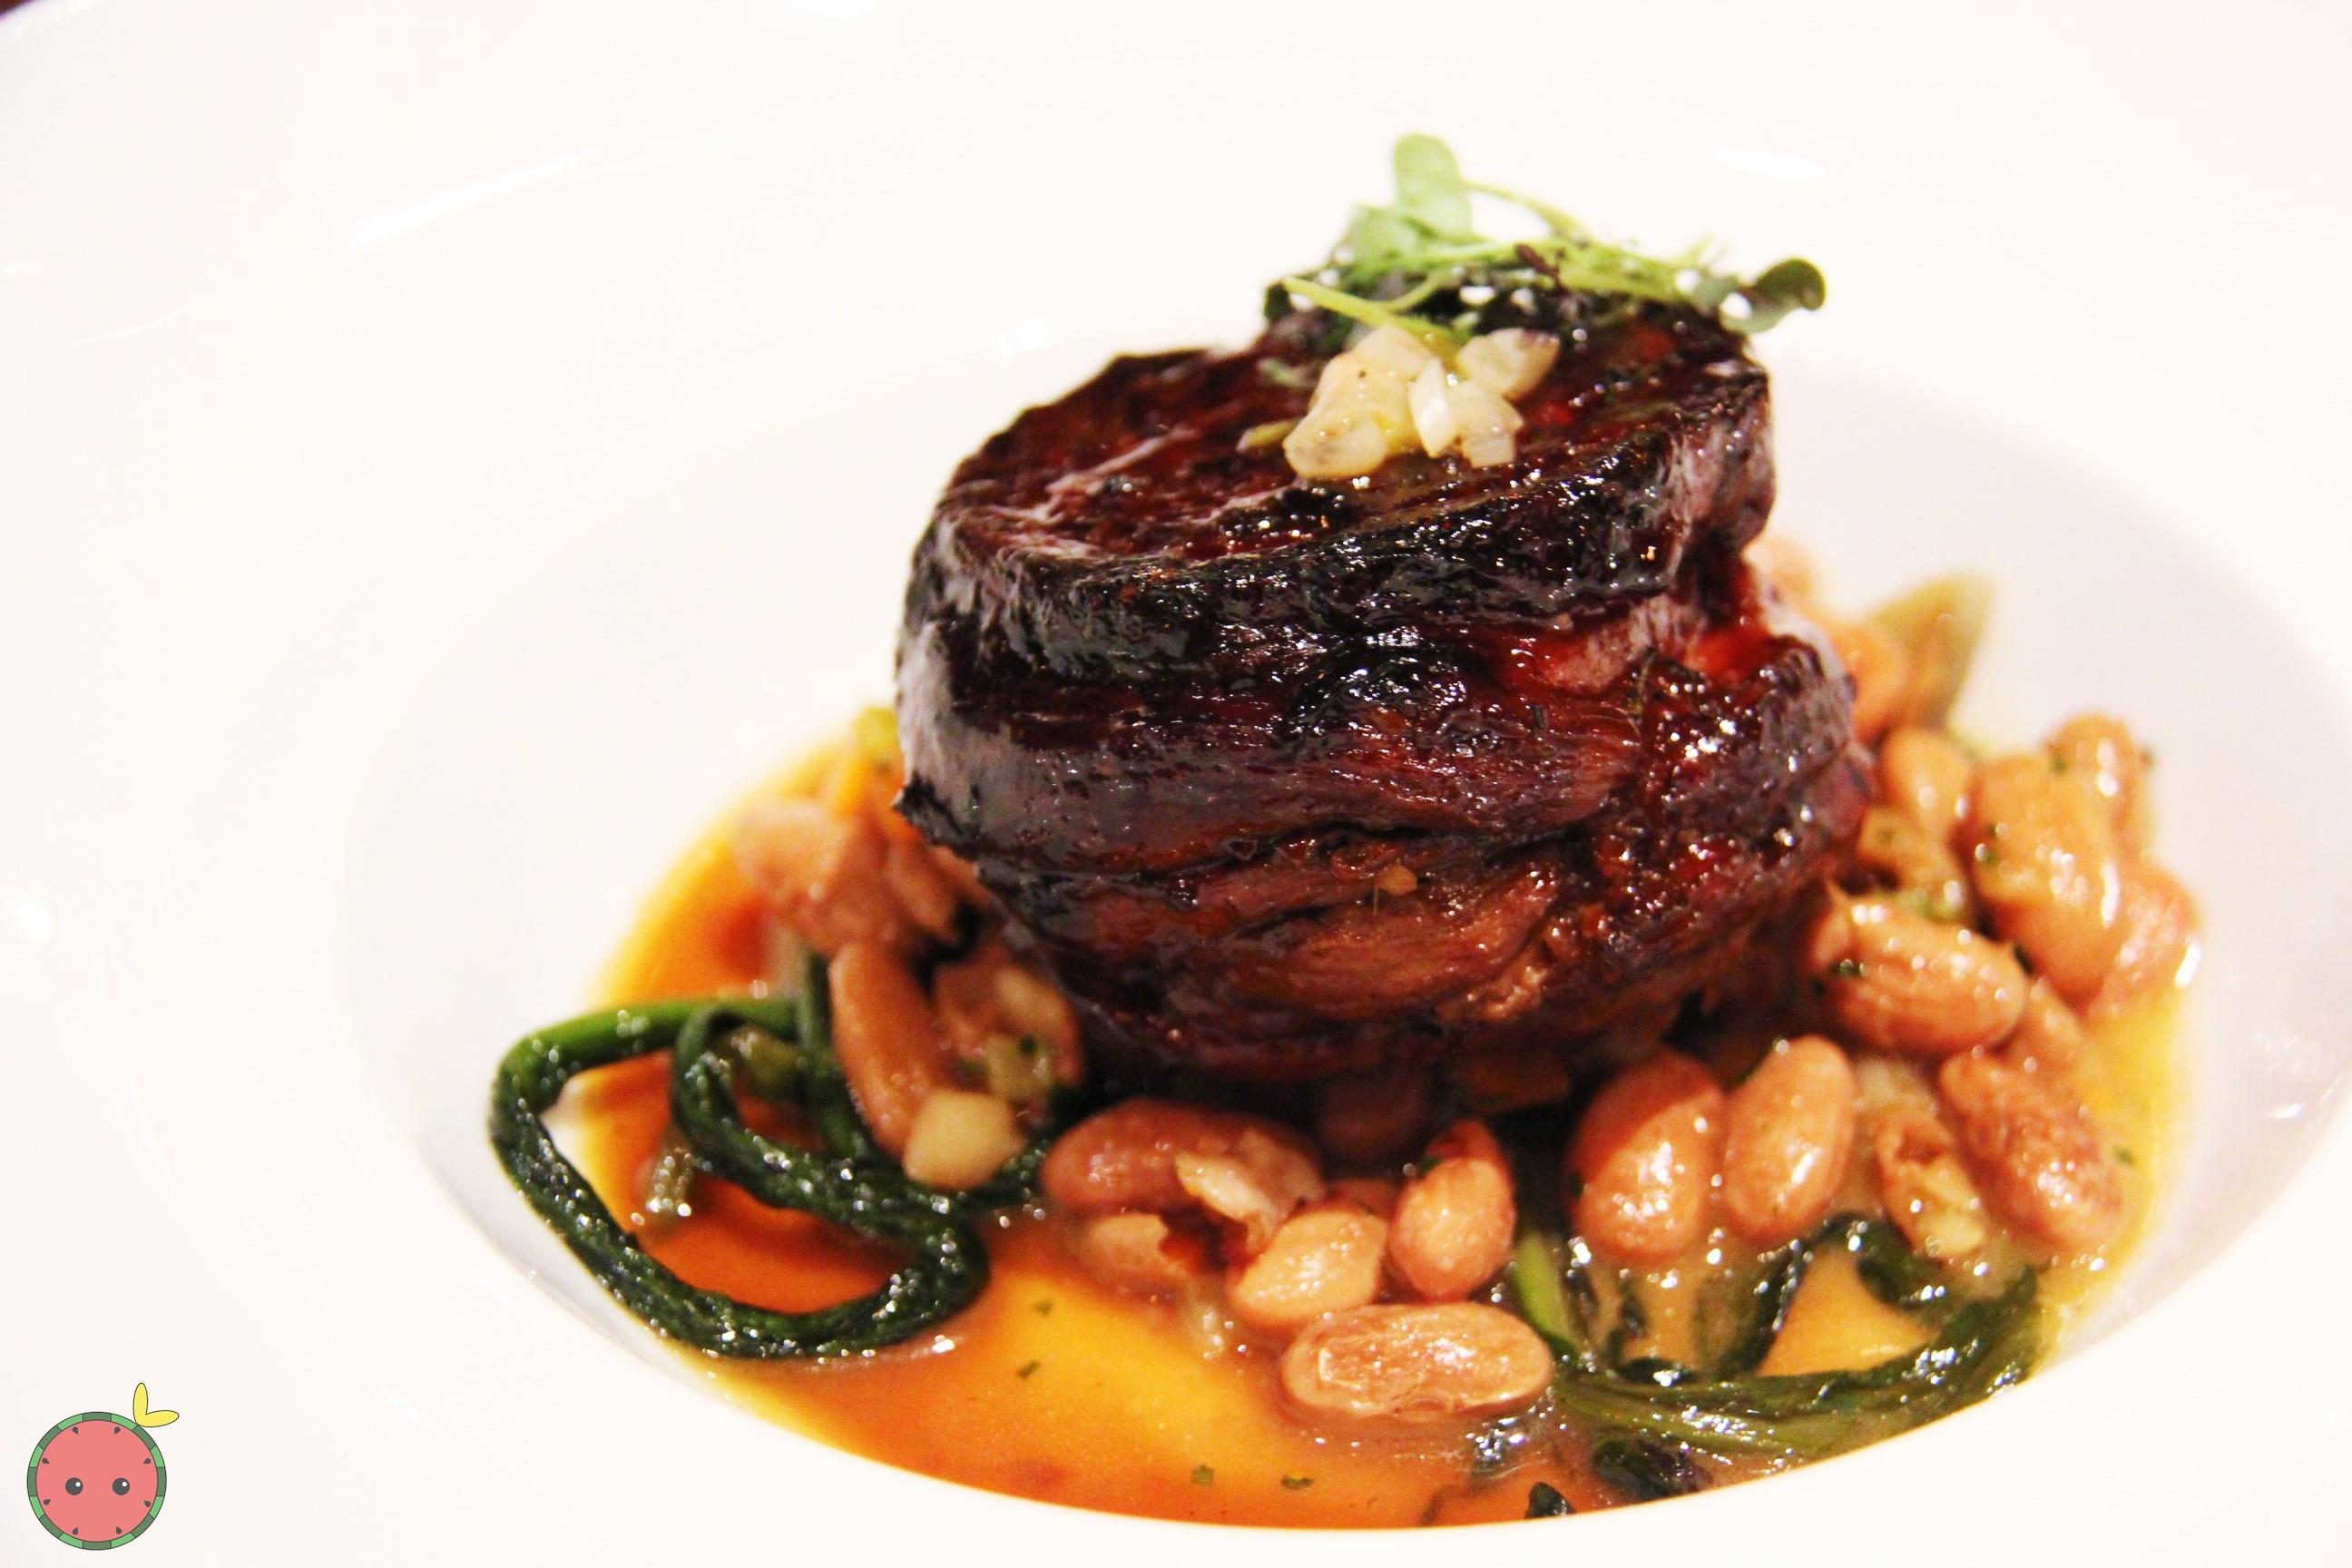 Braised lamb, ramps, cranberry beans